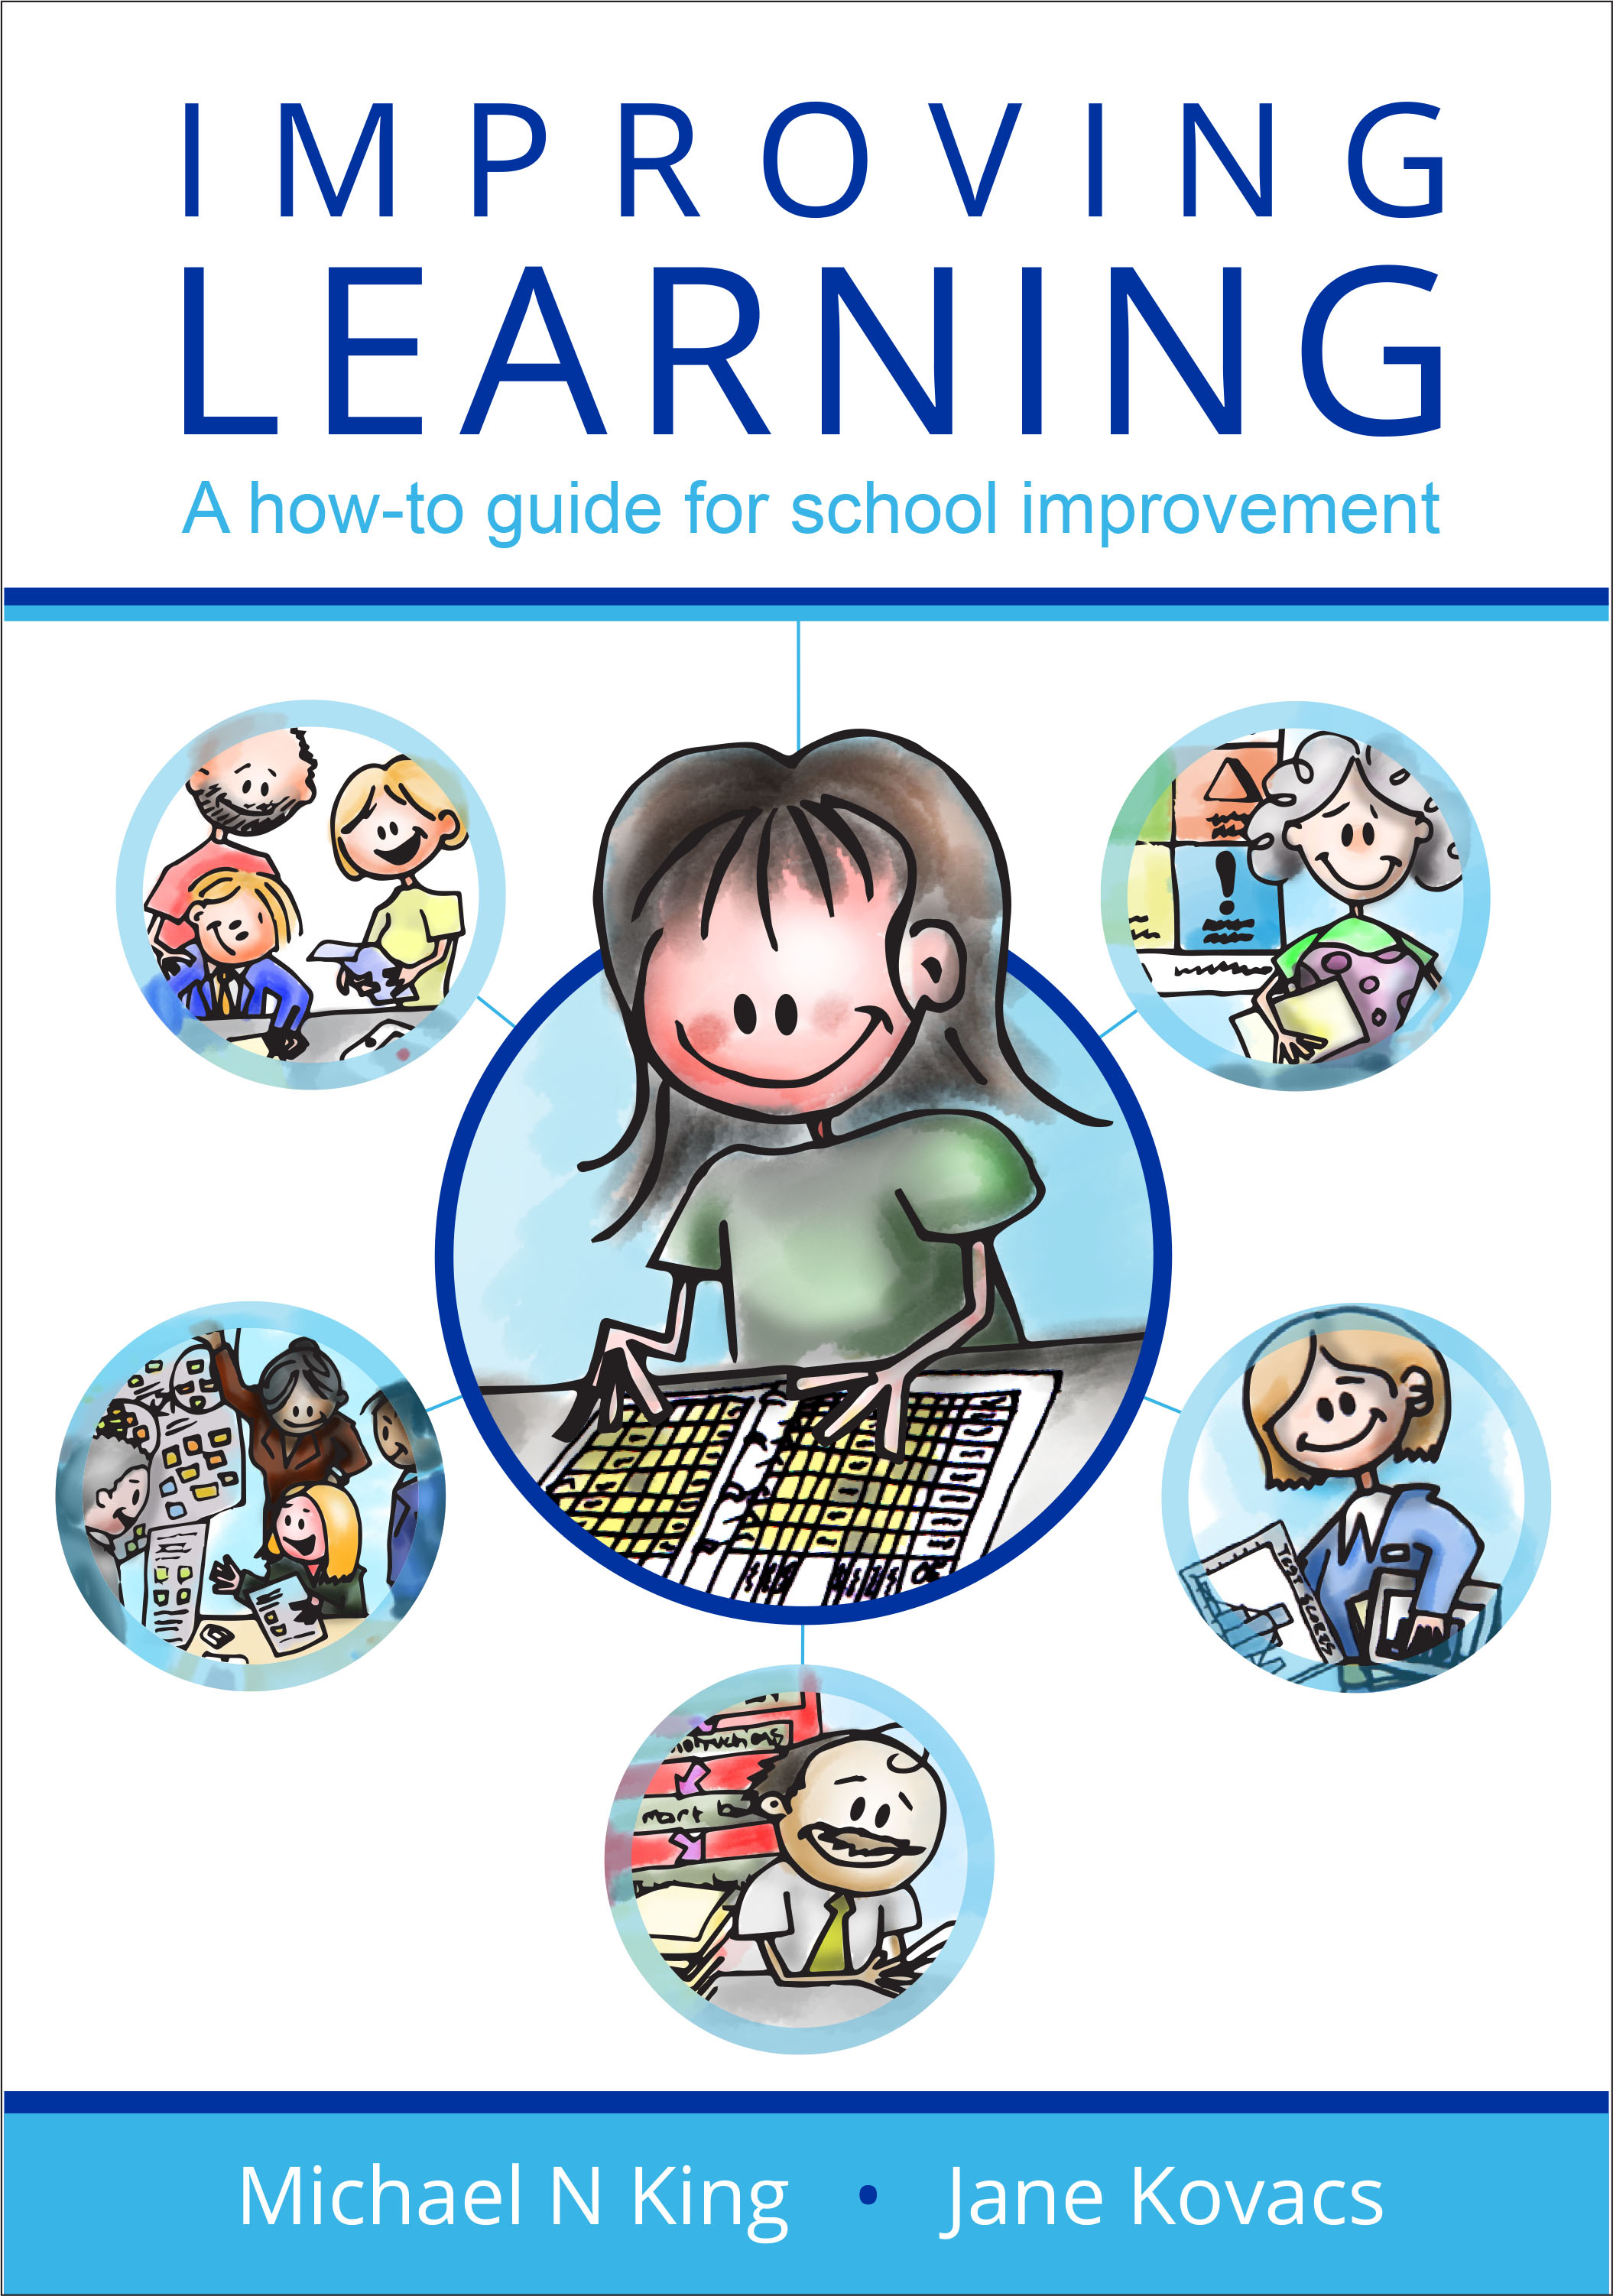 Improving Learning: A how-to guide to school improvement